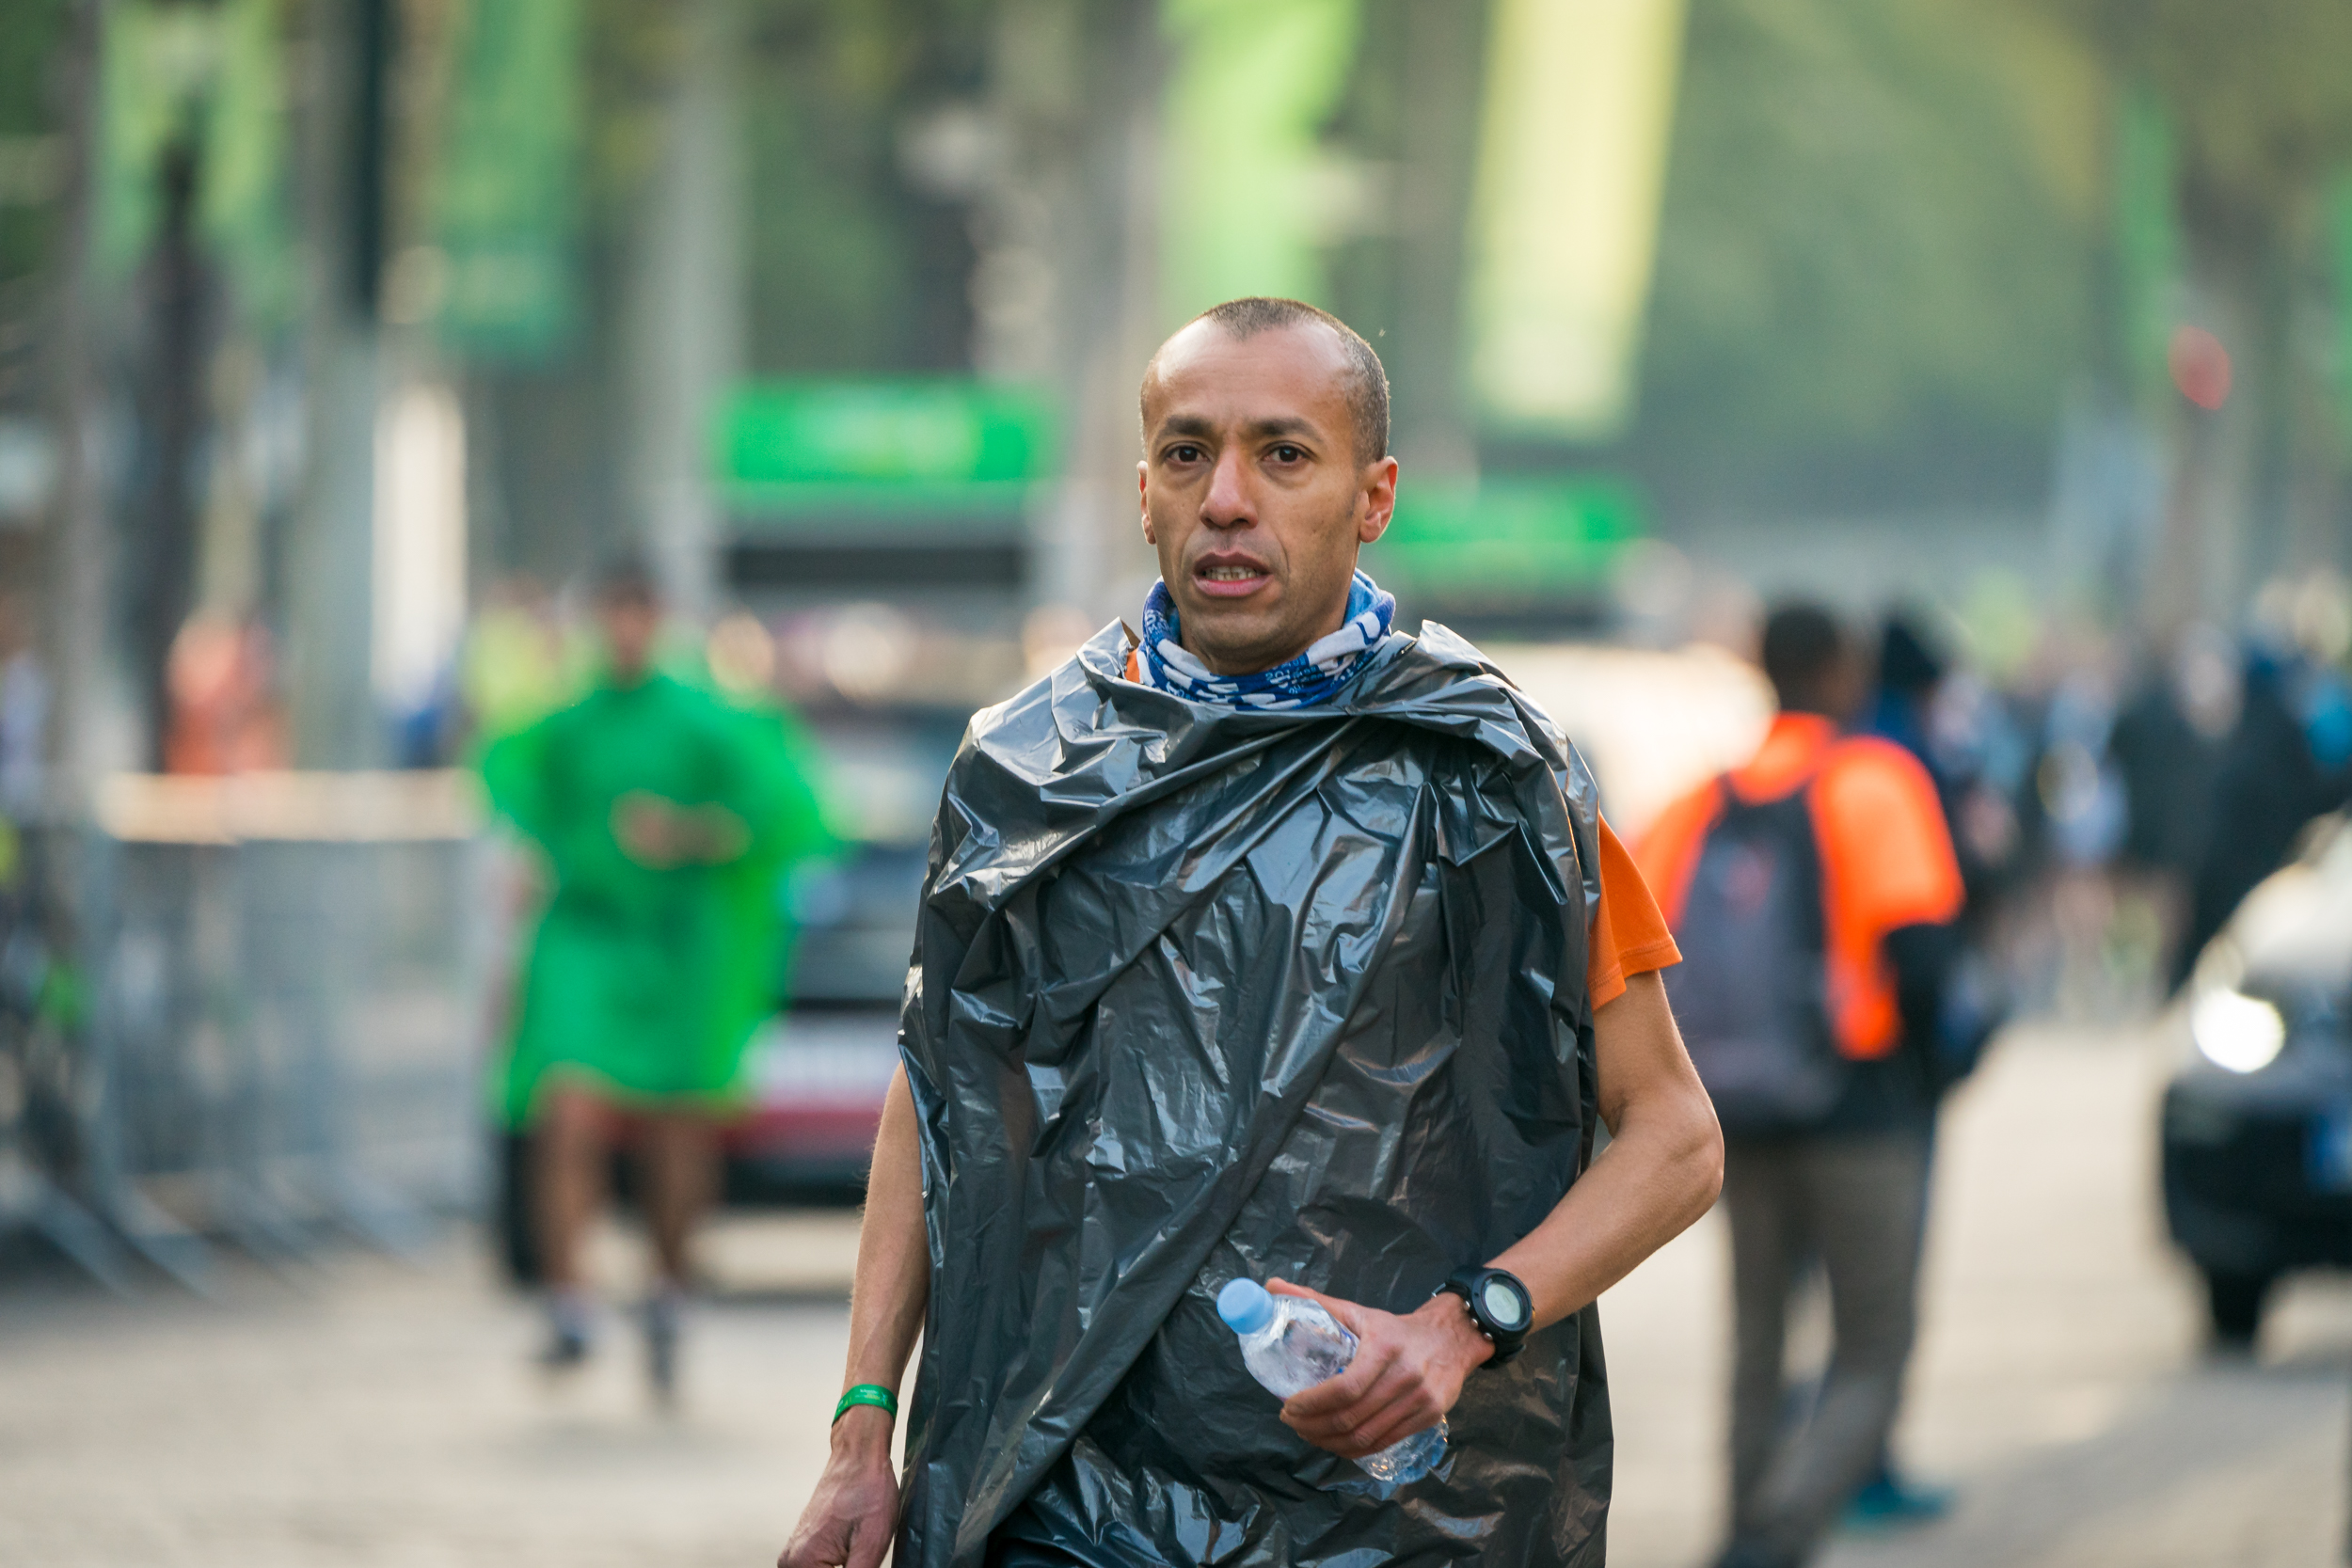 BMW_Marathon Paris 2019_Florian Leger_SHARE & DARE_HD_ N°-8.jpg